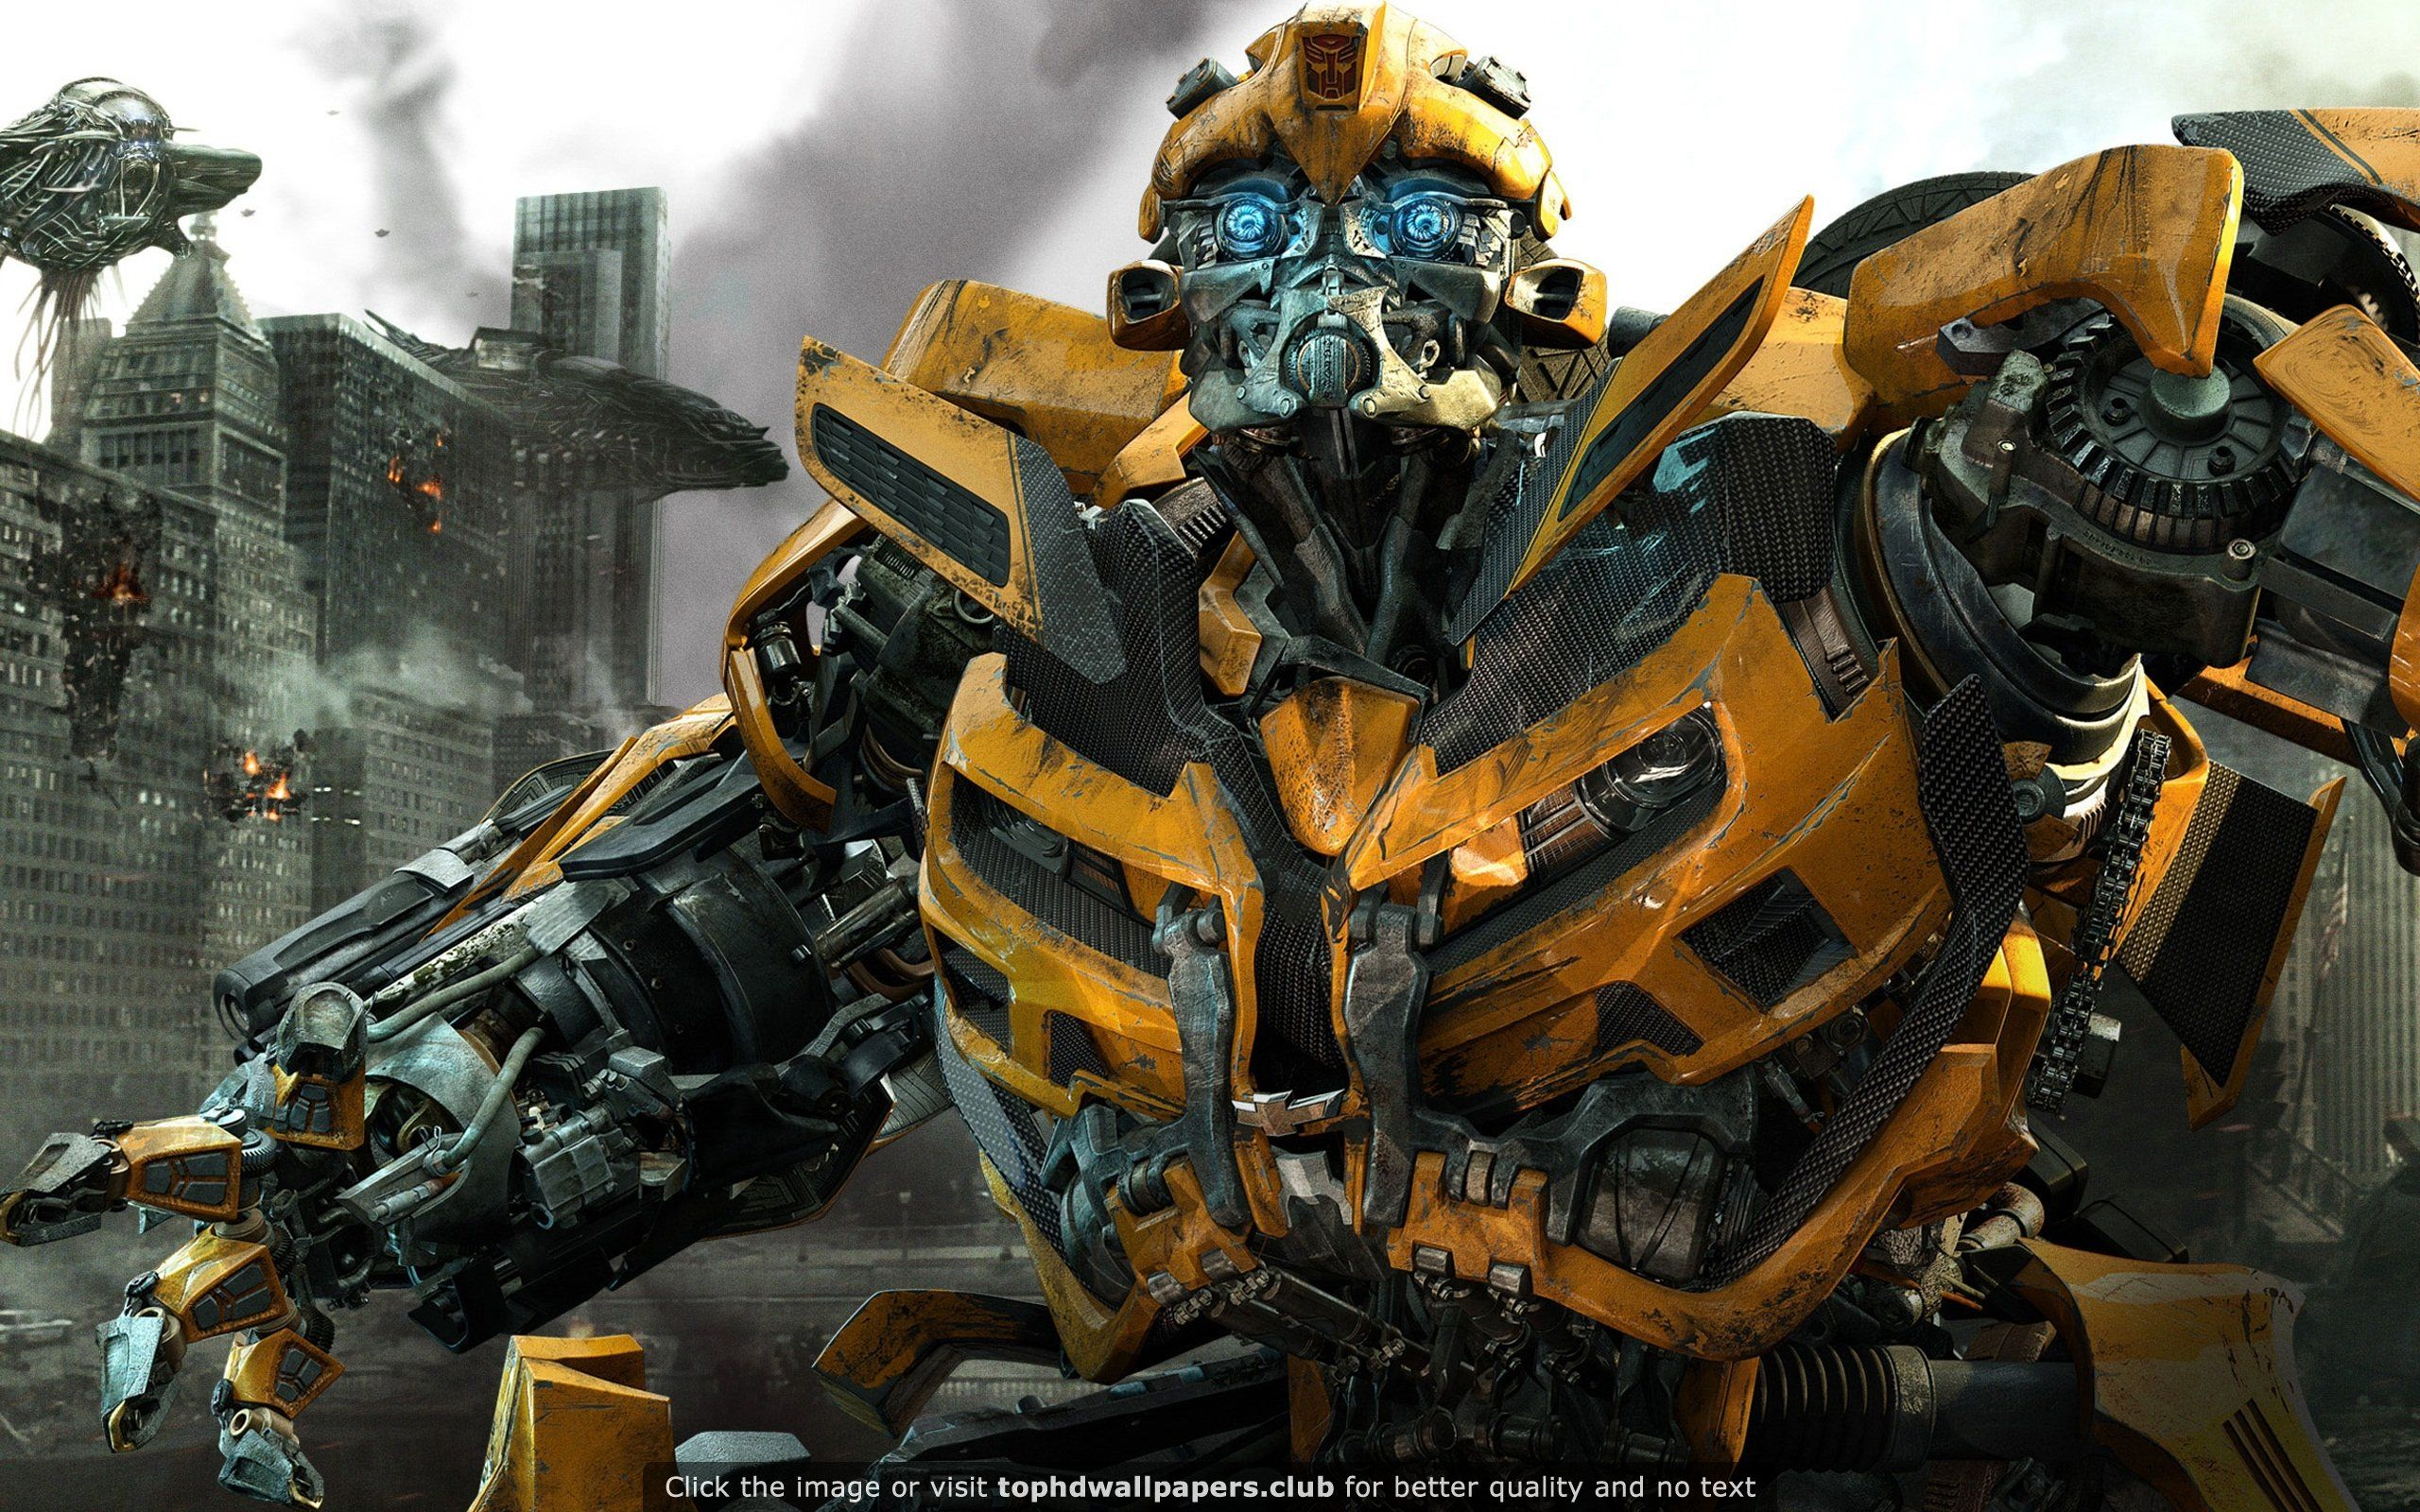 bumblebee in transformers 3 hd wallpaper for your pc mac or mobile